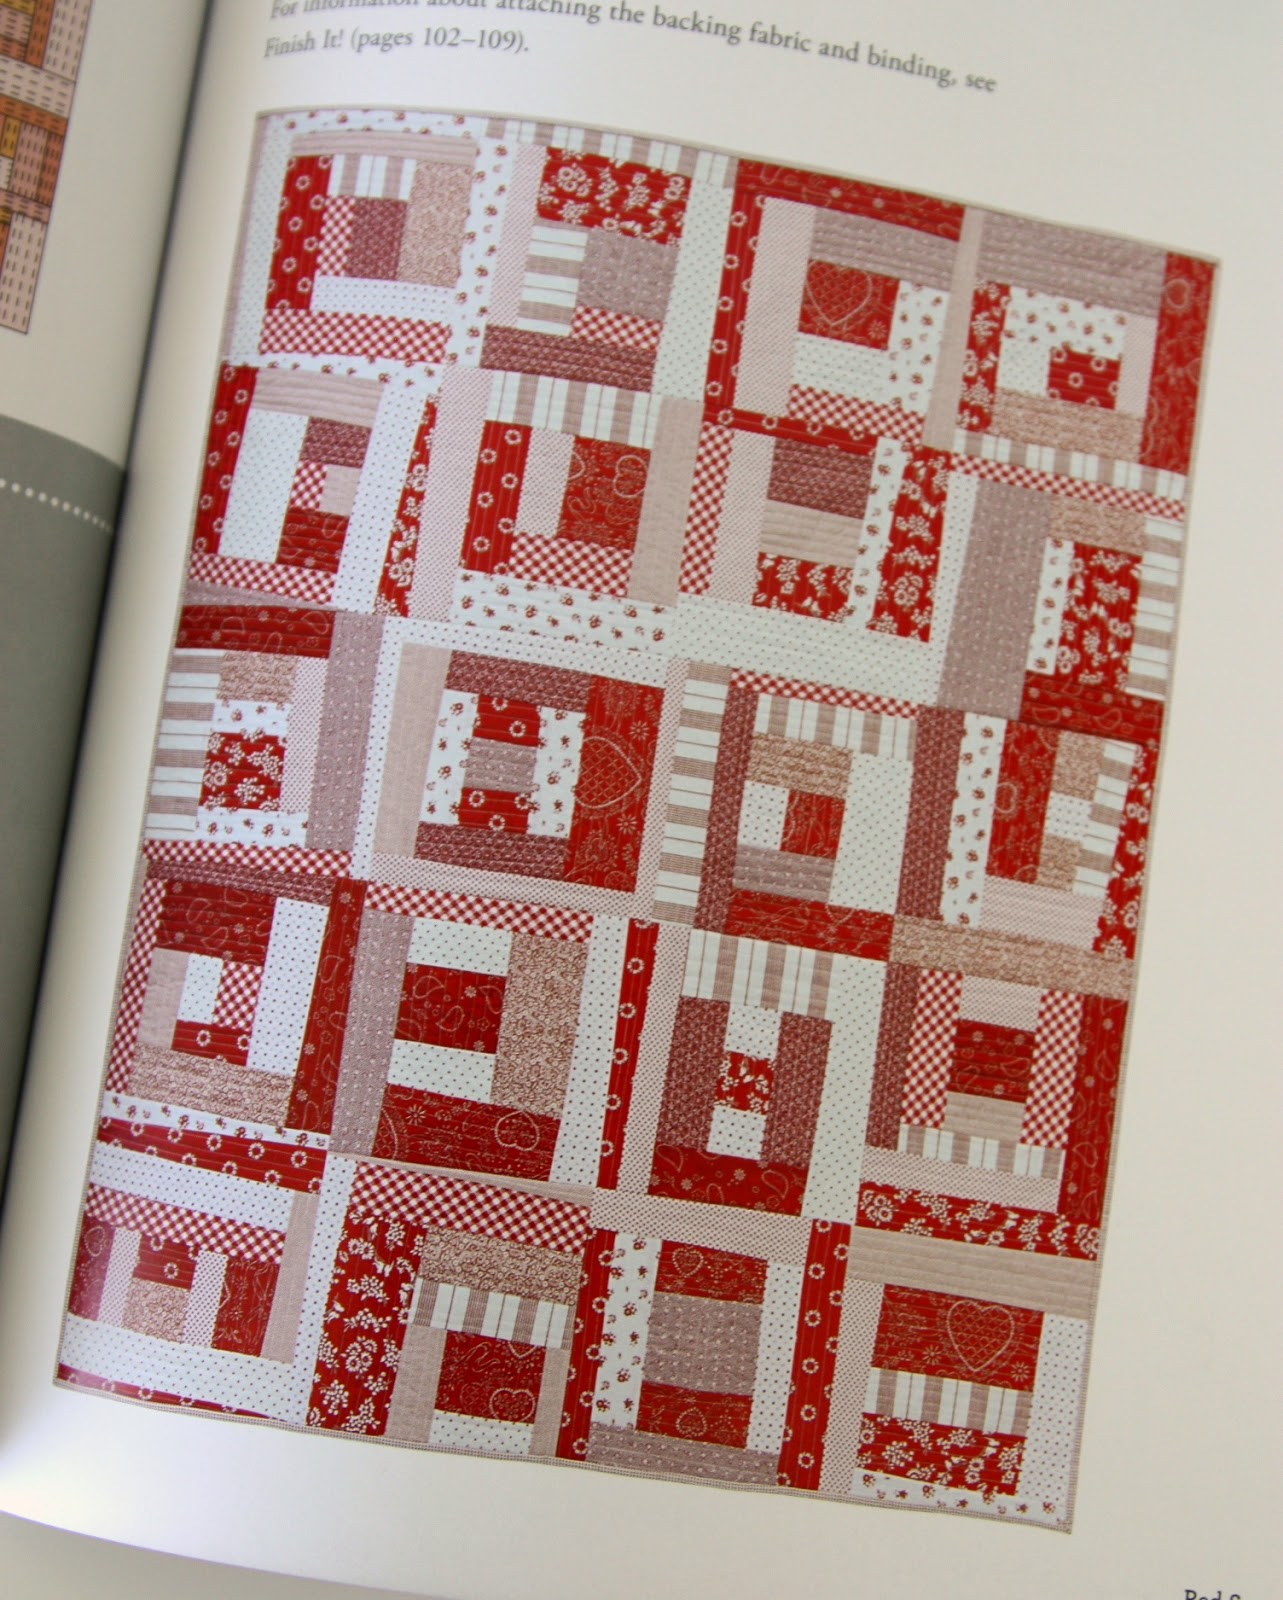 Modern Quilt-as-you-Go pattern book - Diary of a Quilter - a quilt ... : quilt as you go books - Adamdwight.com